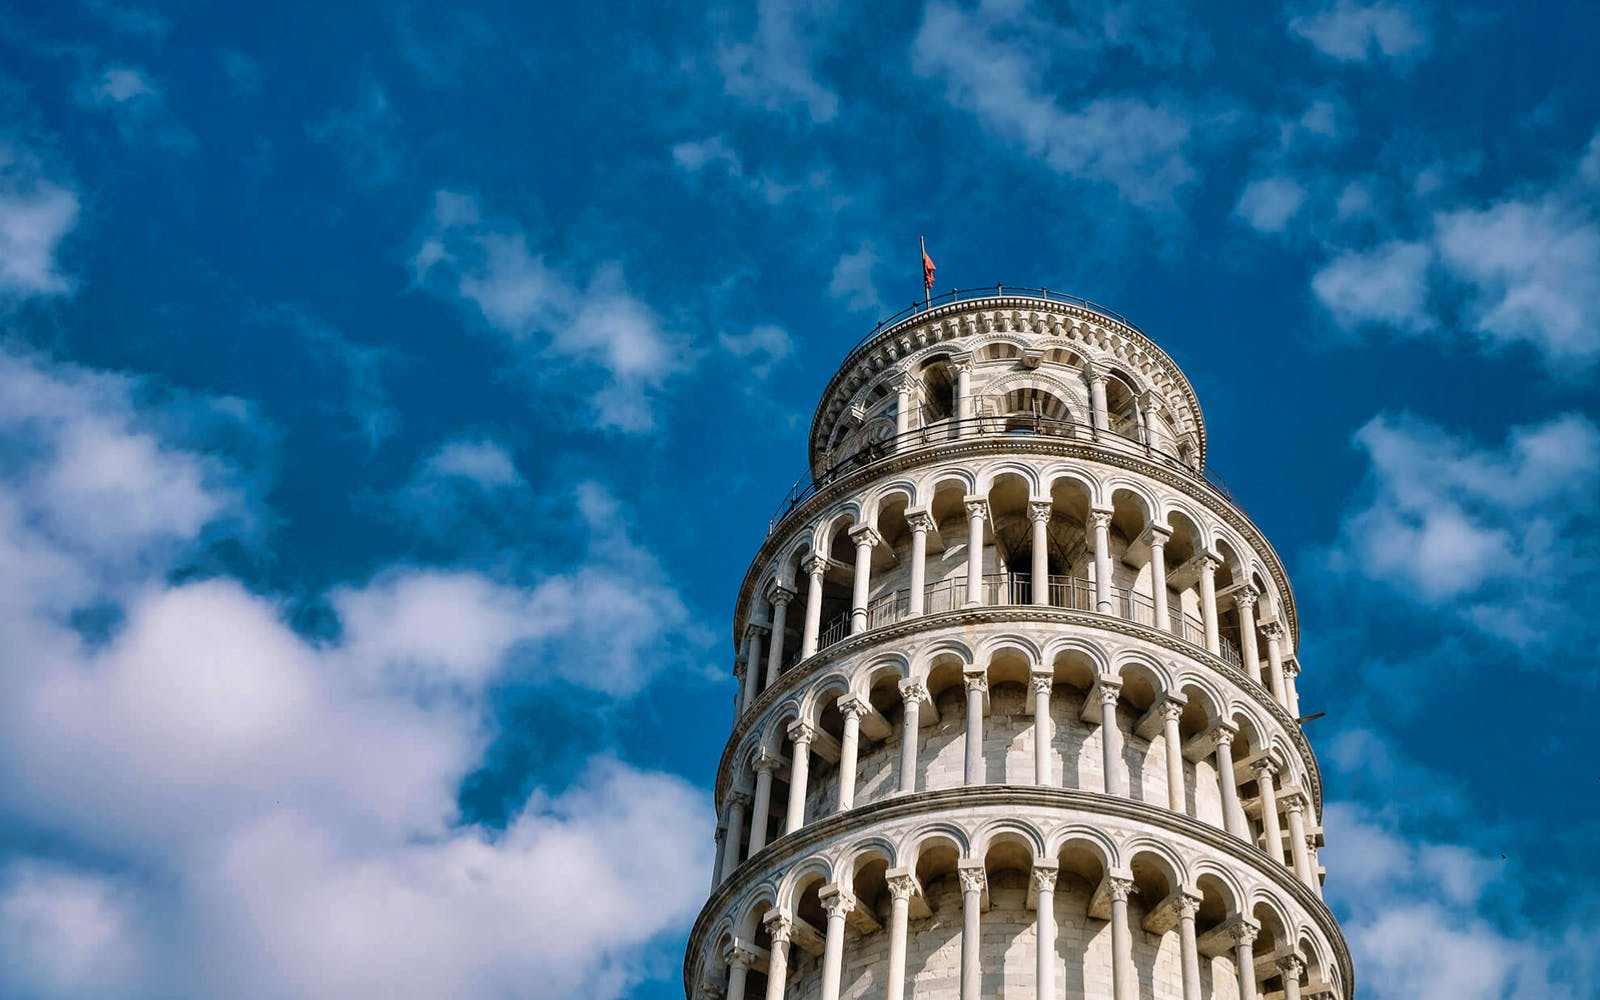 guided tour of pisa with skip the line access to the leaning tower -1